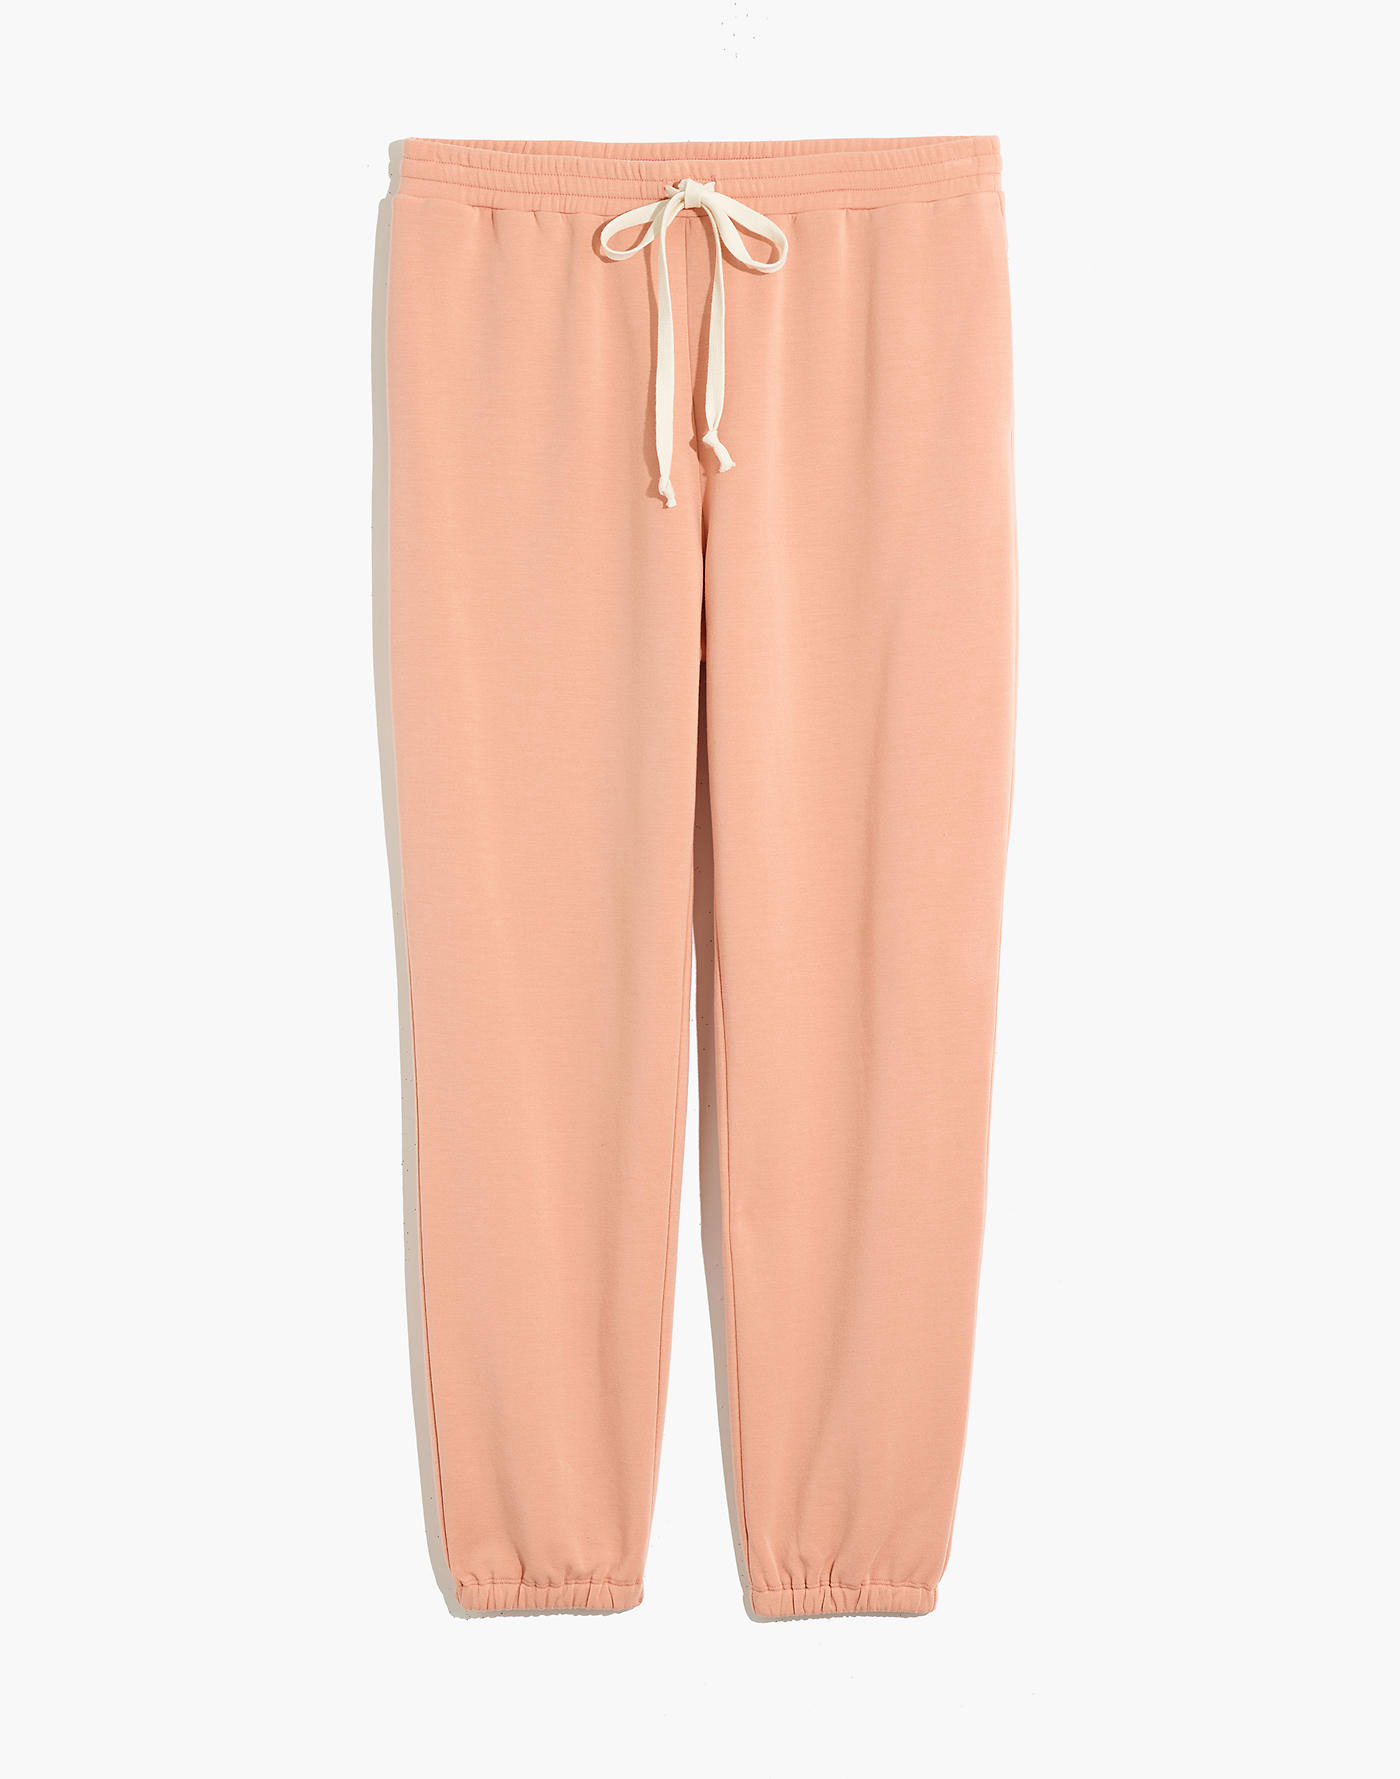 Best gifts for her, for women - Madewell MWL Superbrushed Easygoing Sweatpants